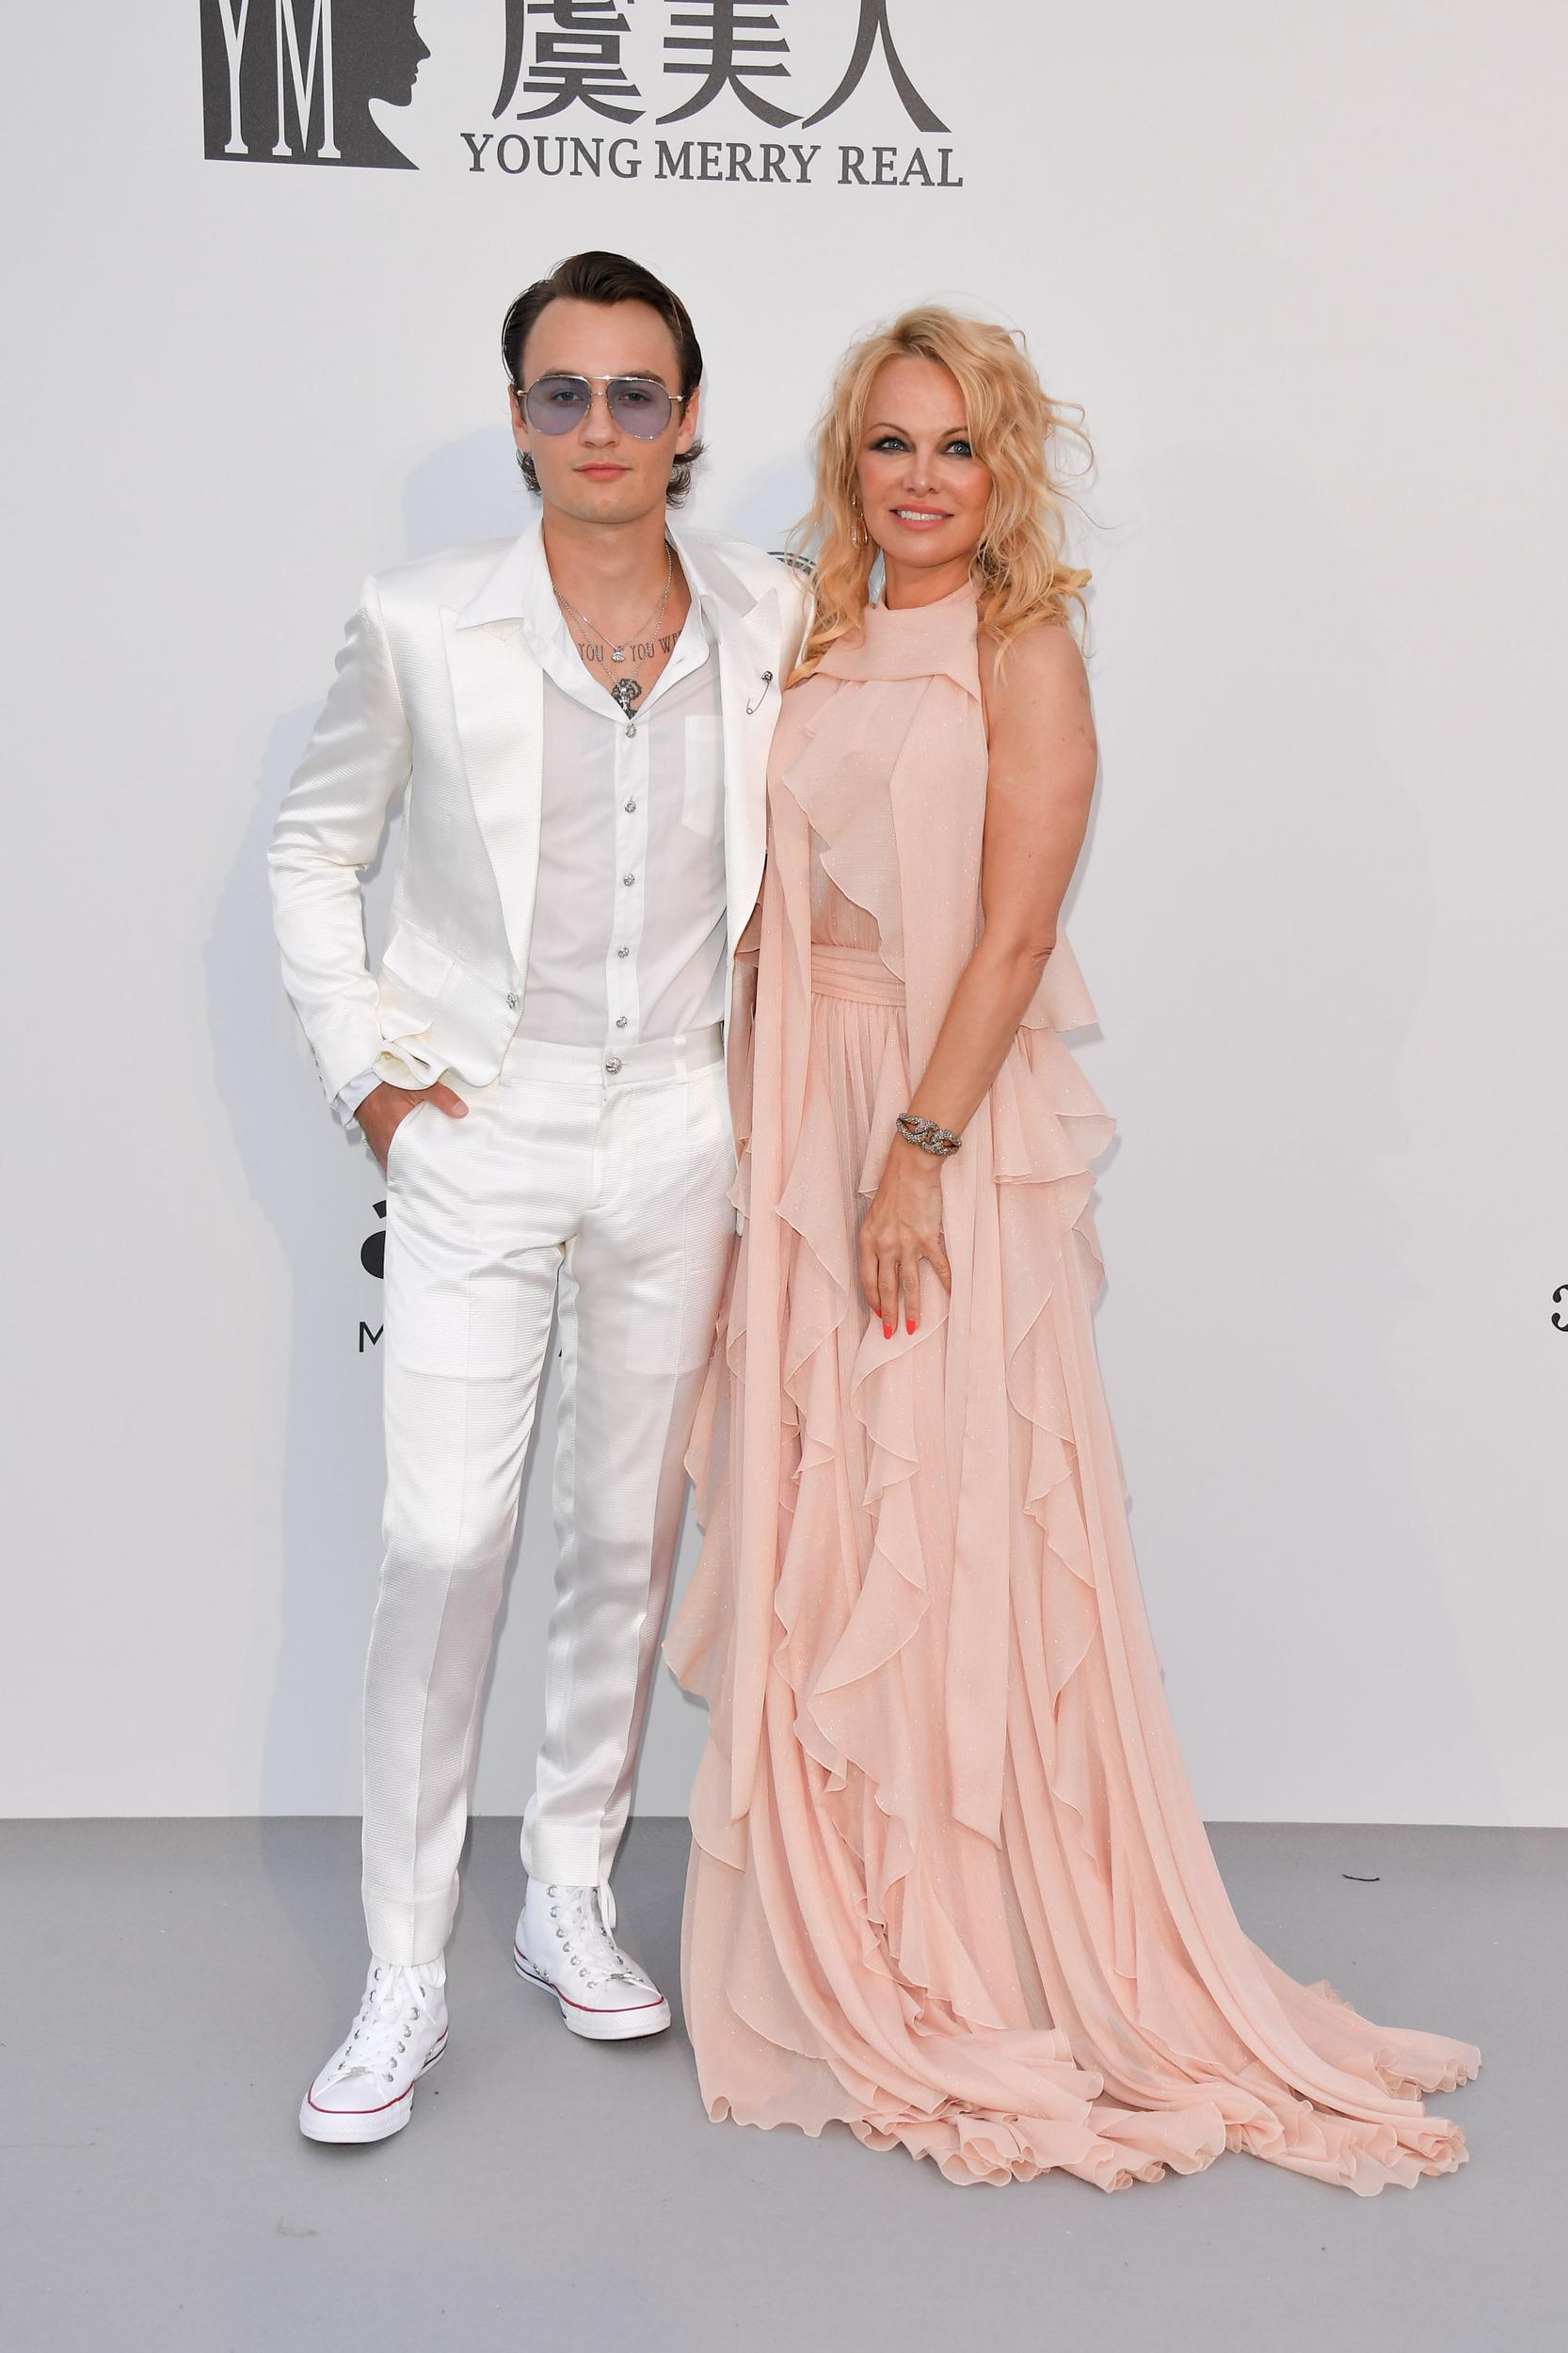 CAP D'ANTIBES, FRANCE - MAY 23: Brandon Lee and Pamela Anderson attend the amfAR Cannes Gala 2019 at Hotel du Cap-Eden-Roc on May 23, 2019 in Cap d'Antibes, France. (Photo by George Pimentel/WireImage)